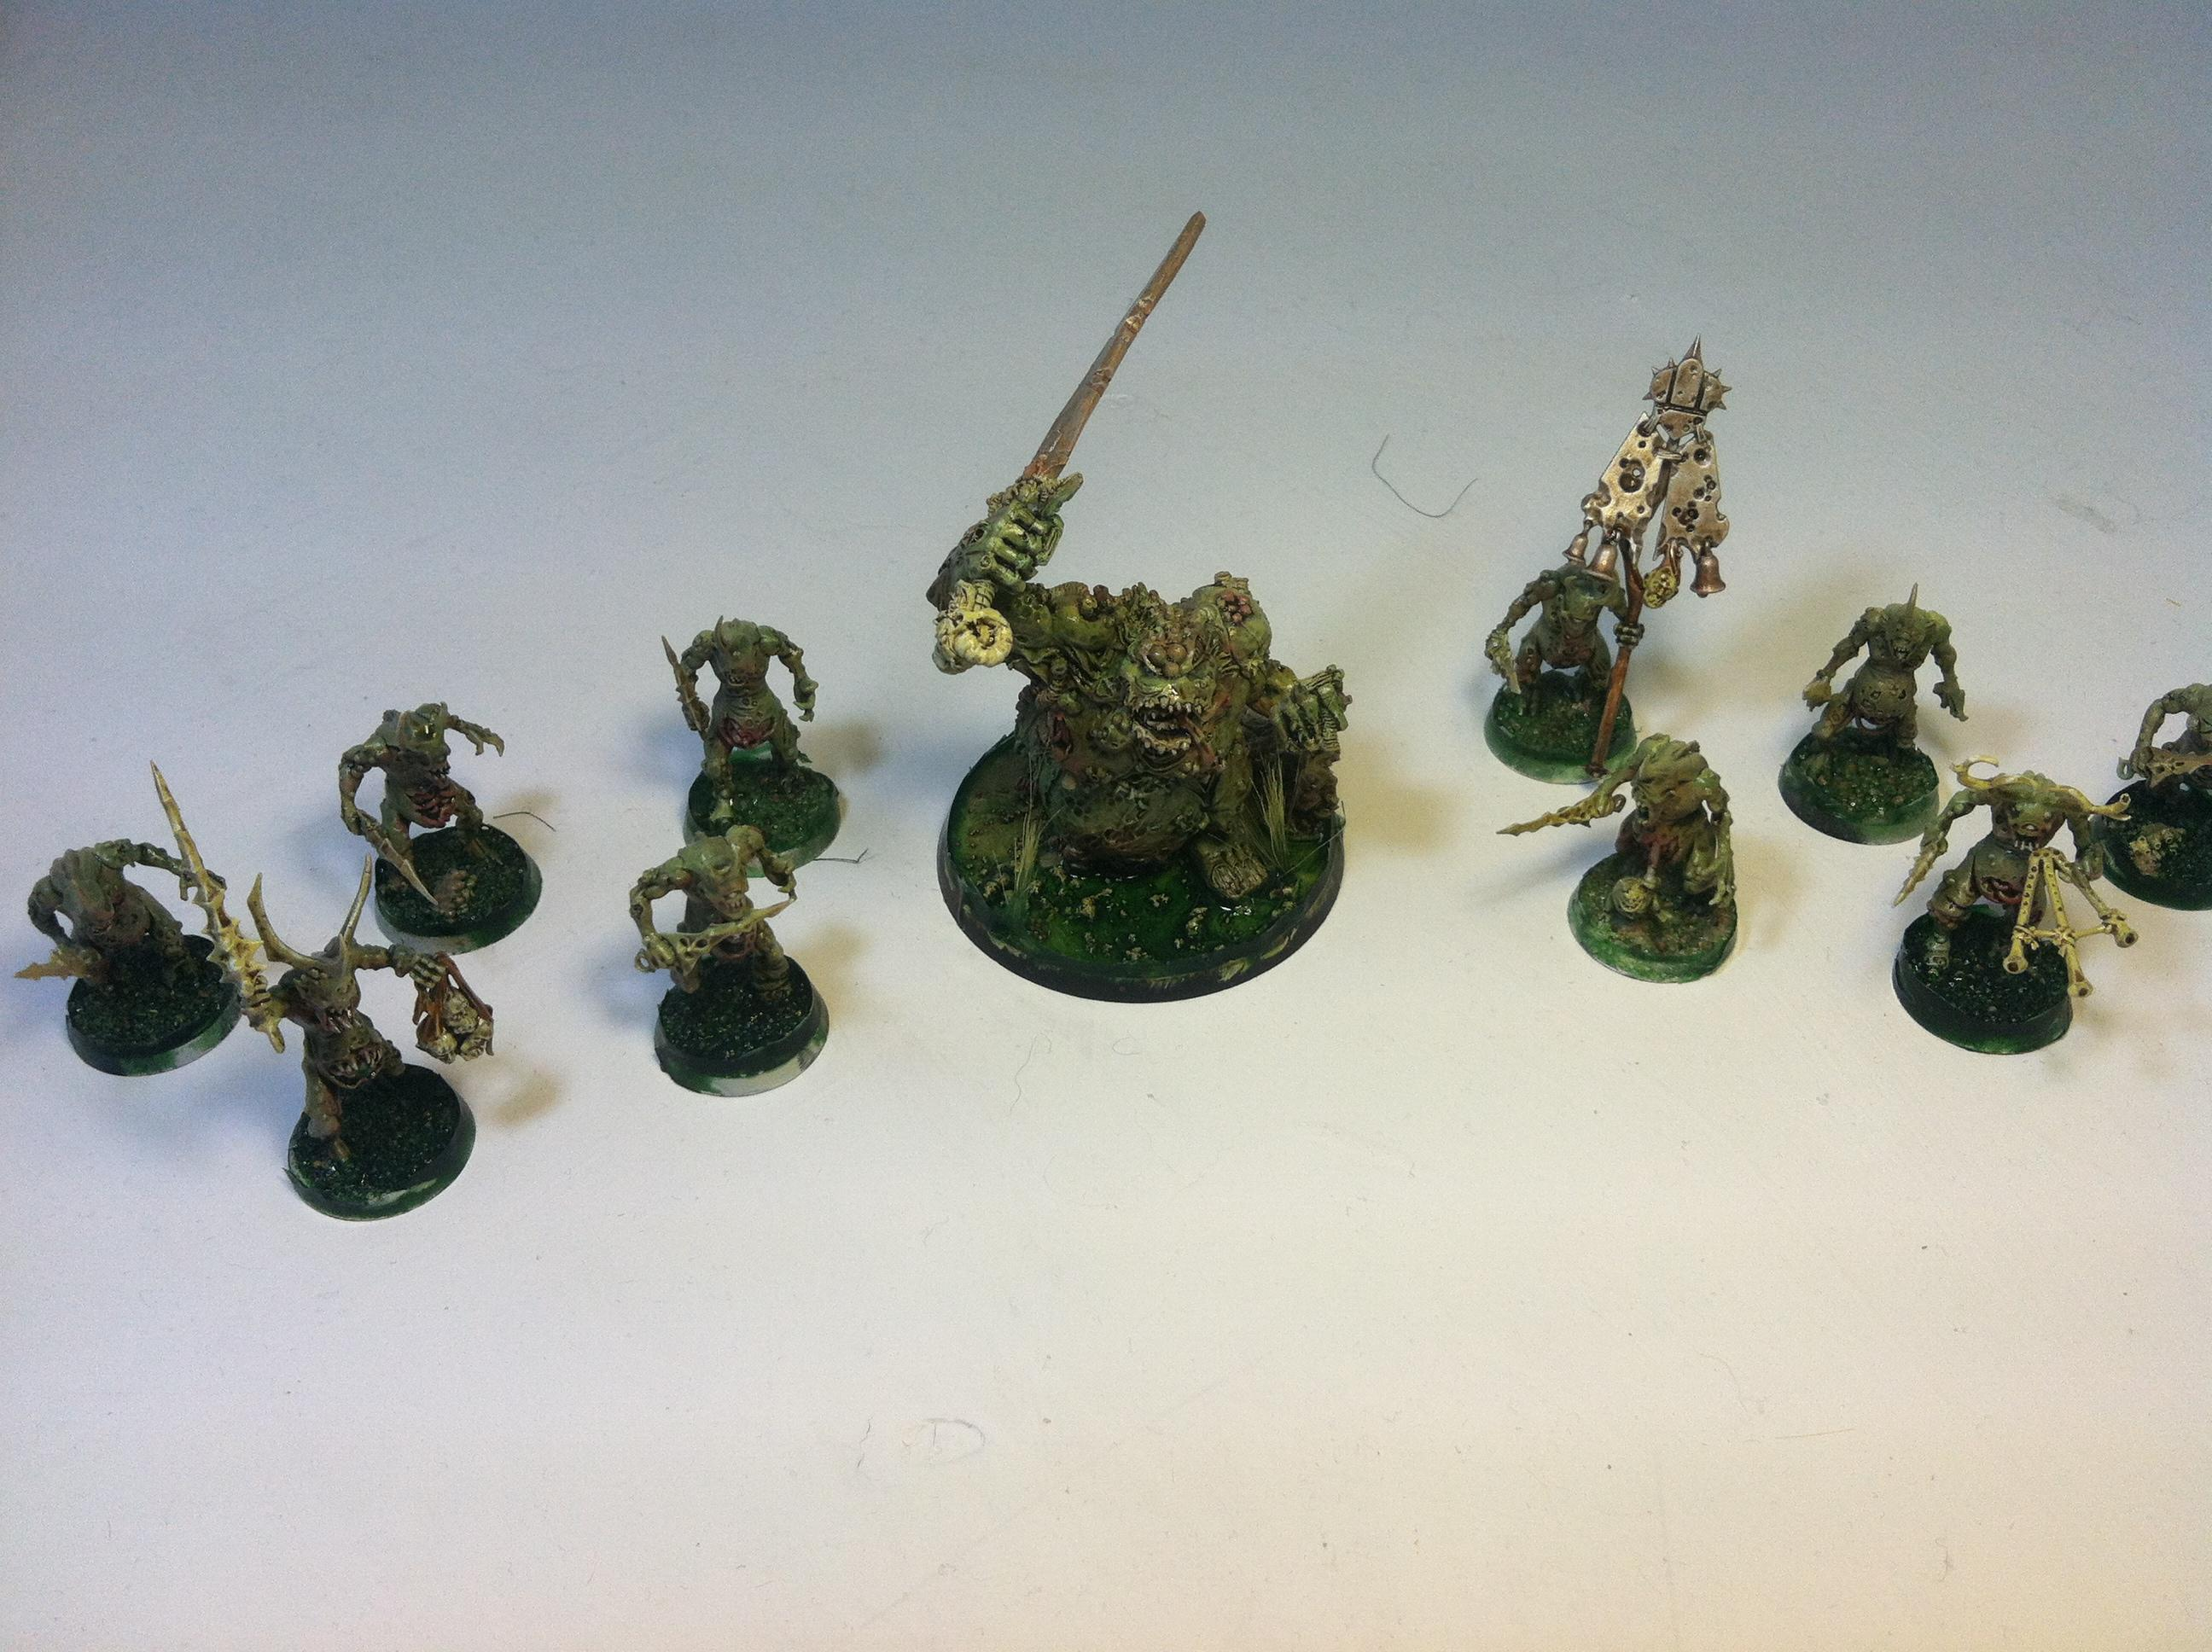 Airbrush, Chaos, Chaos Daemons, Great Unclean One, Nurgle, Plaguebearers